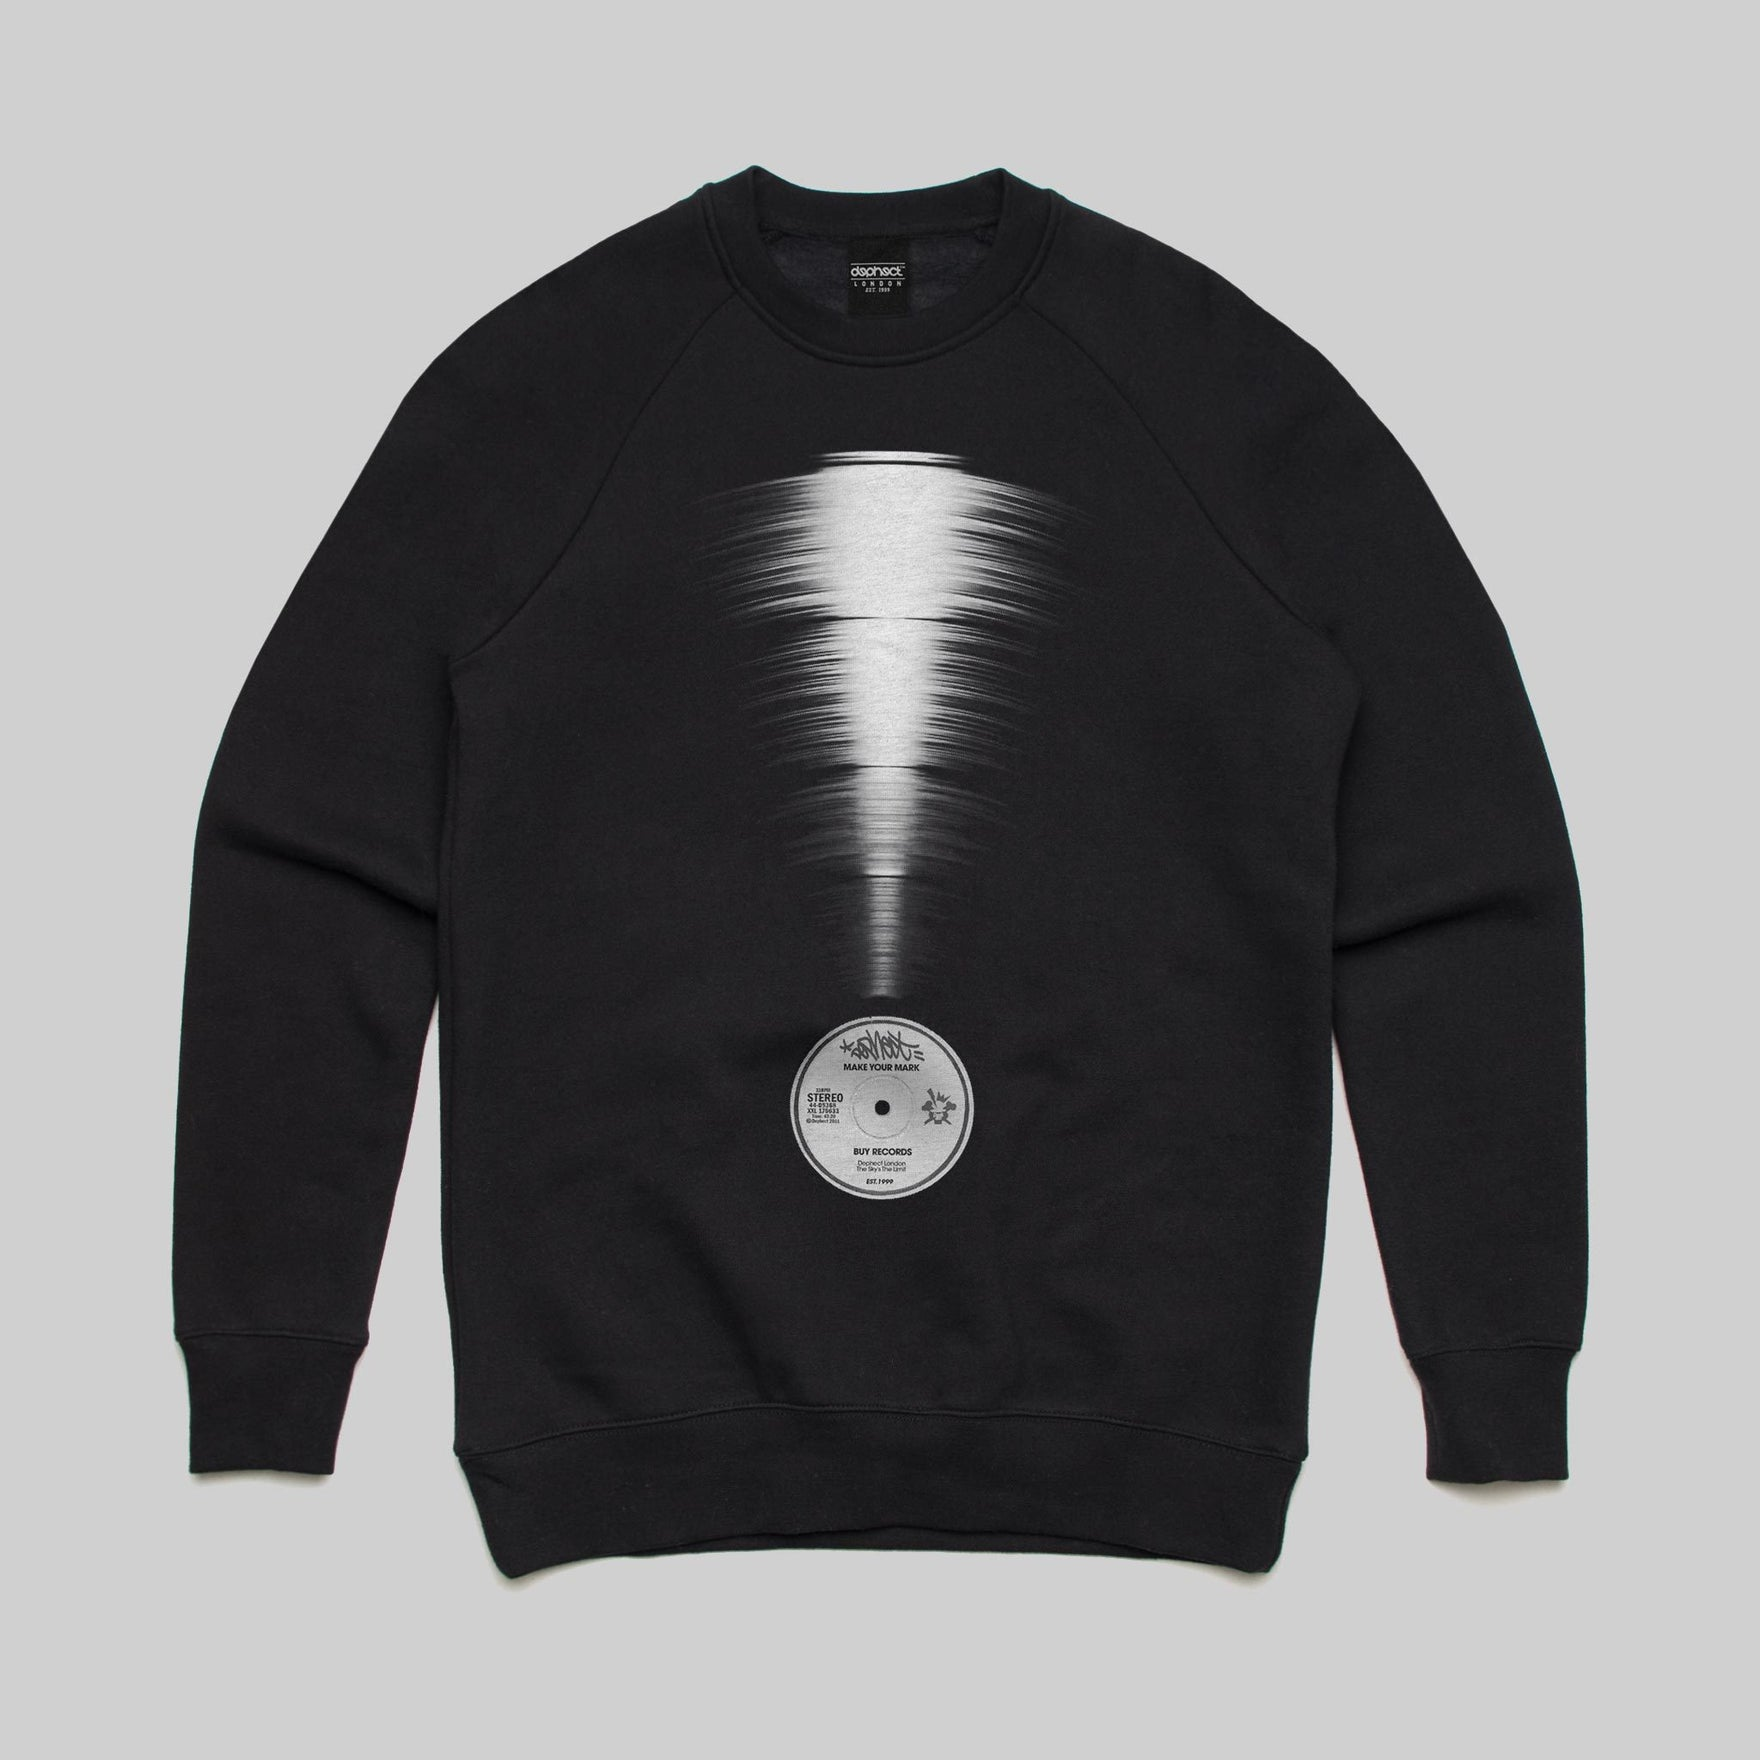 Reclamation Sweatshirt / Black / by Keshone